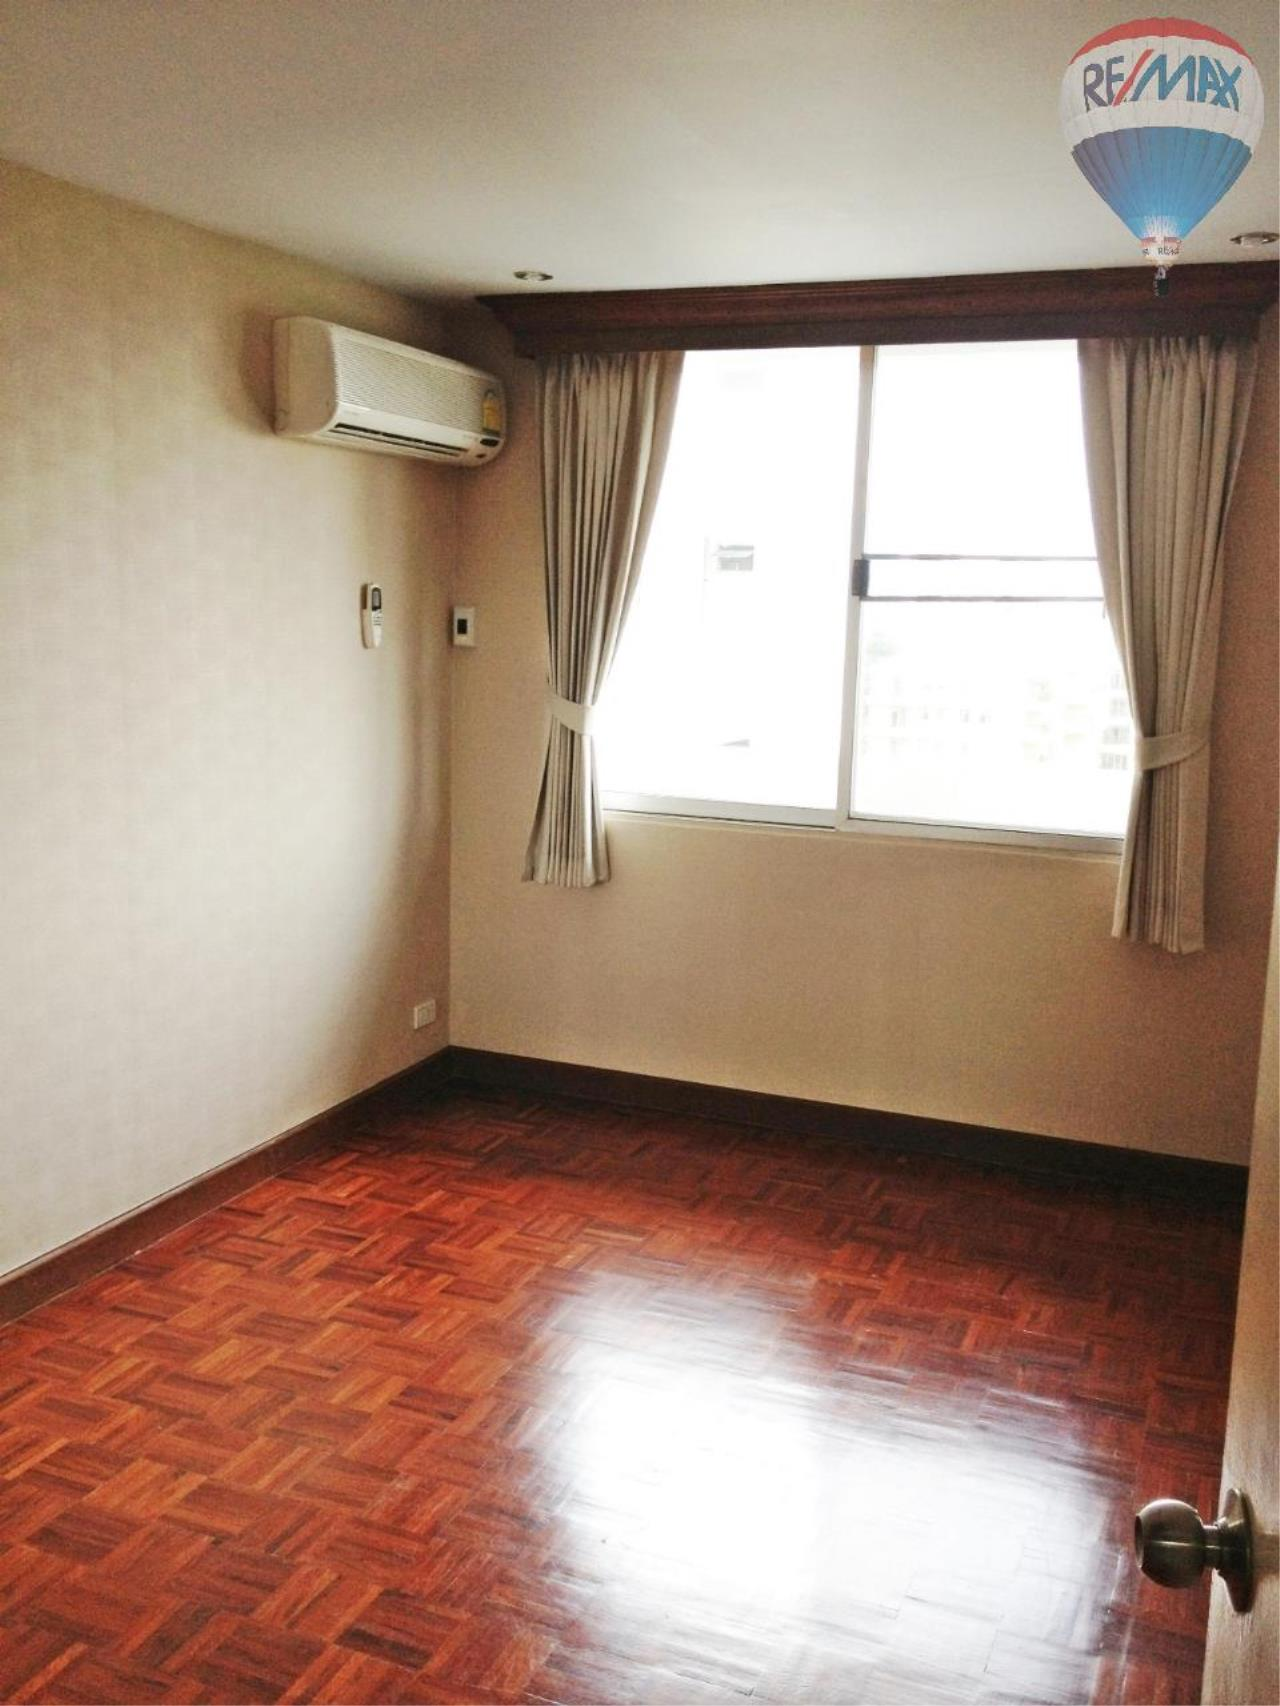 RE/MAX Properties Agency's Condominium for sale 3 bedrooms 123.46 Sq.m. at DS Tower 2 8